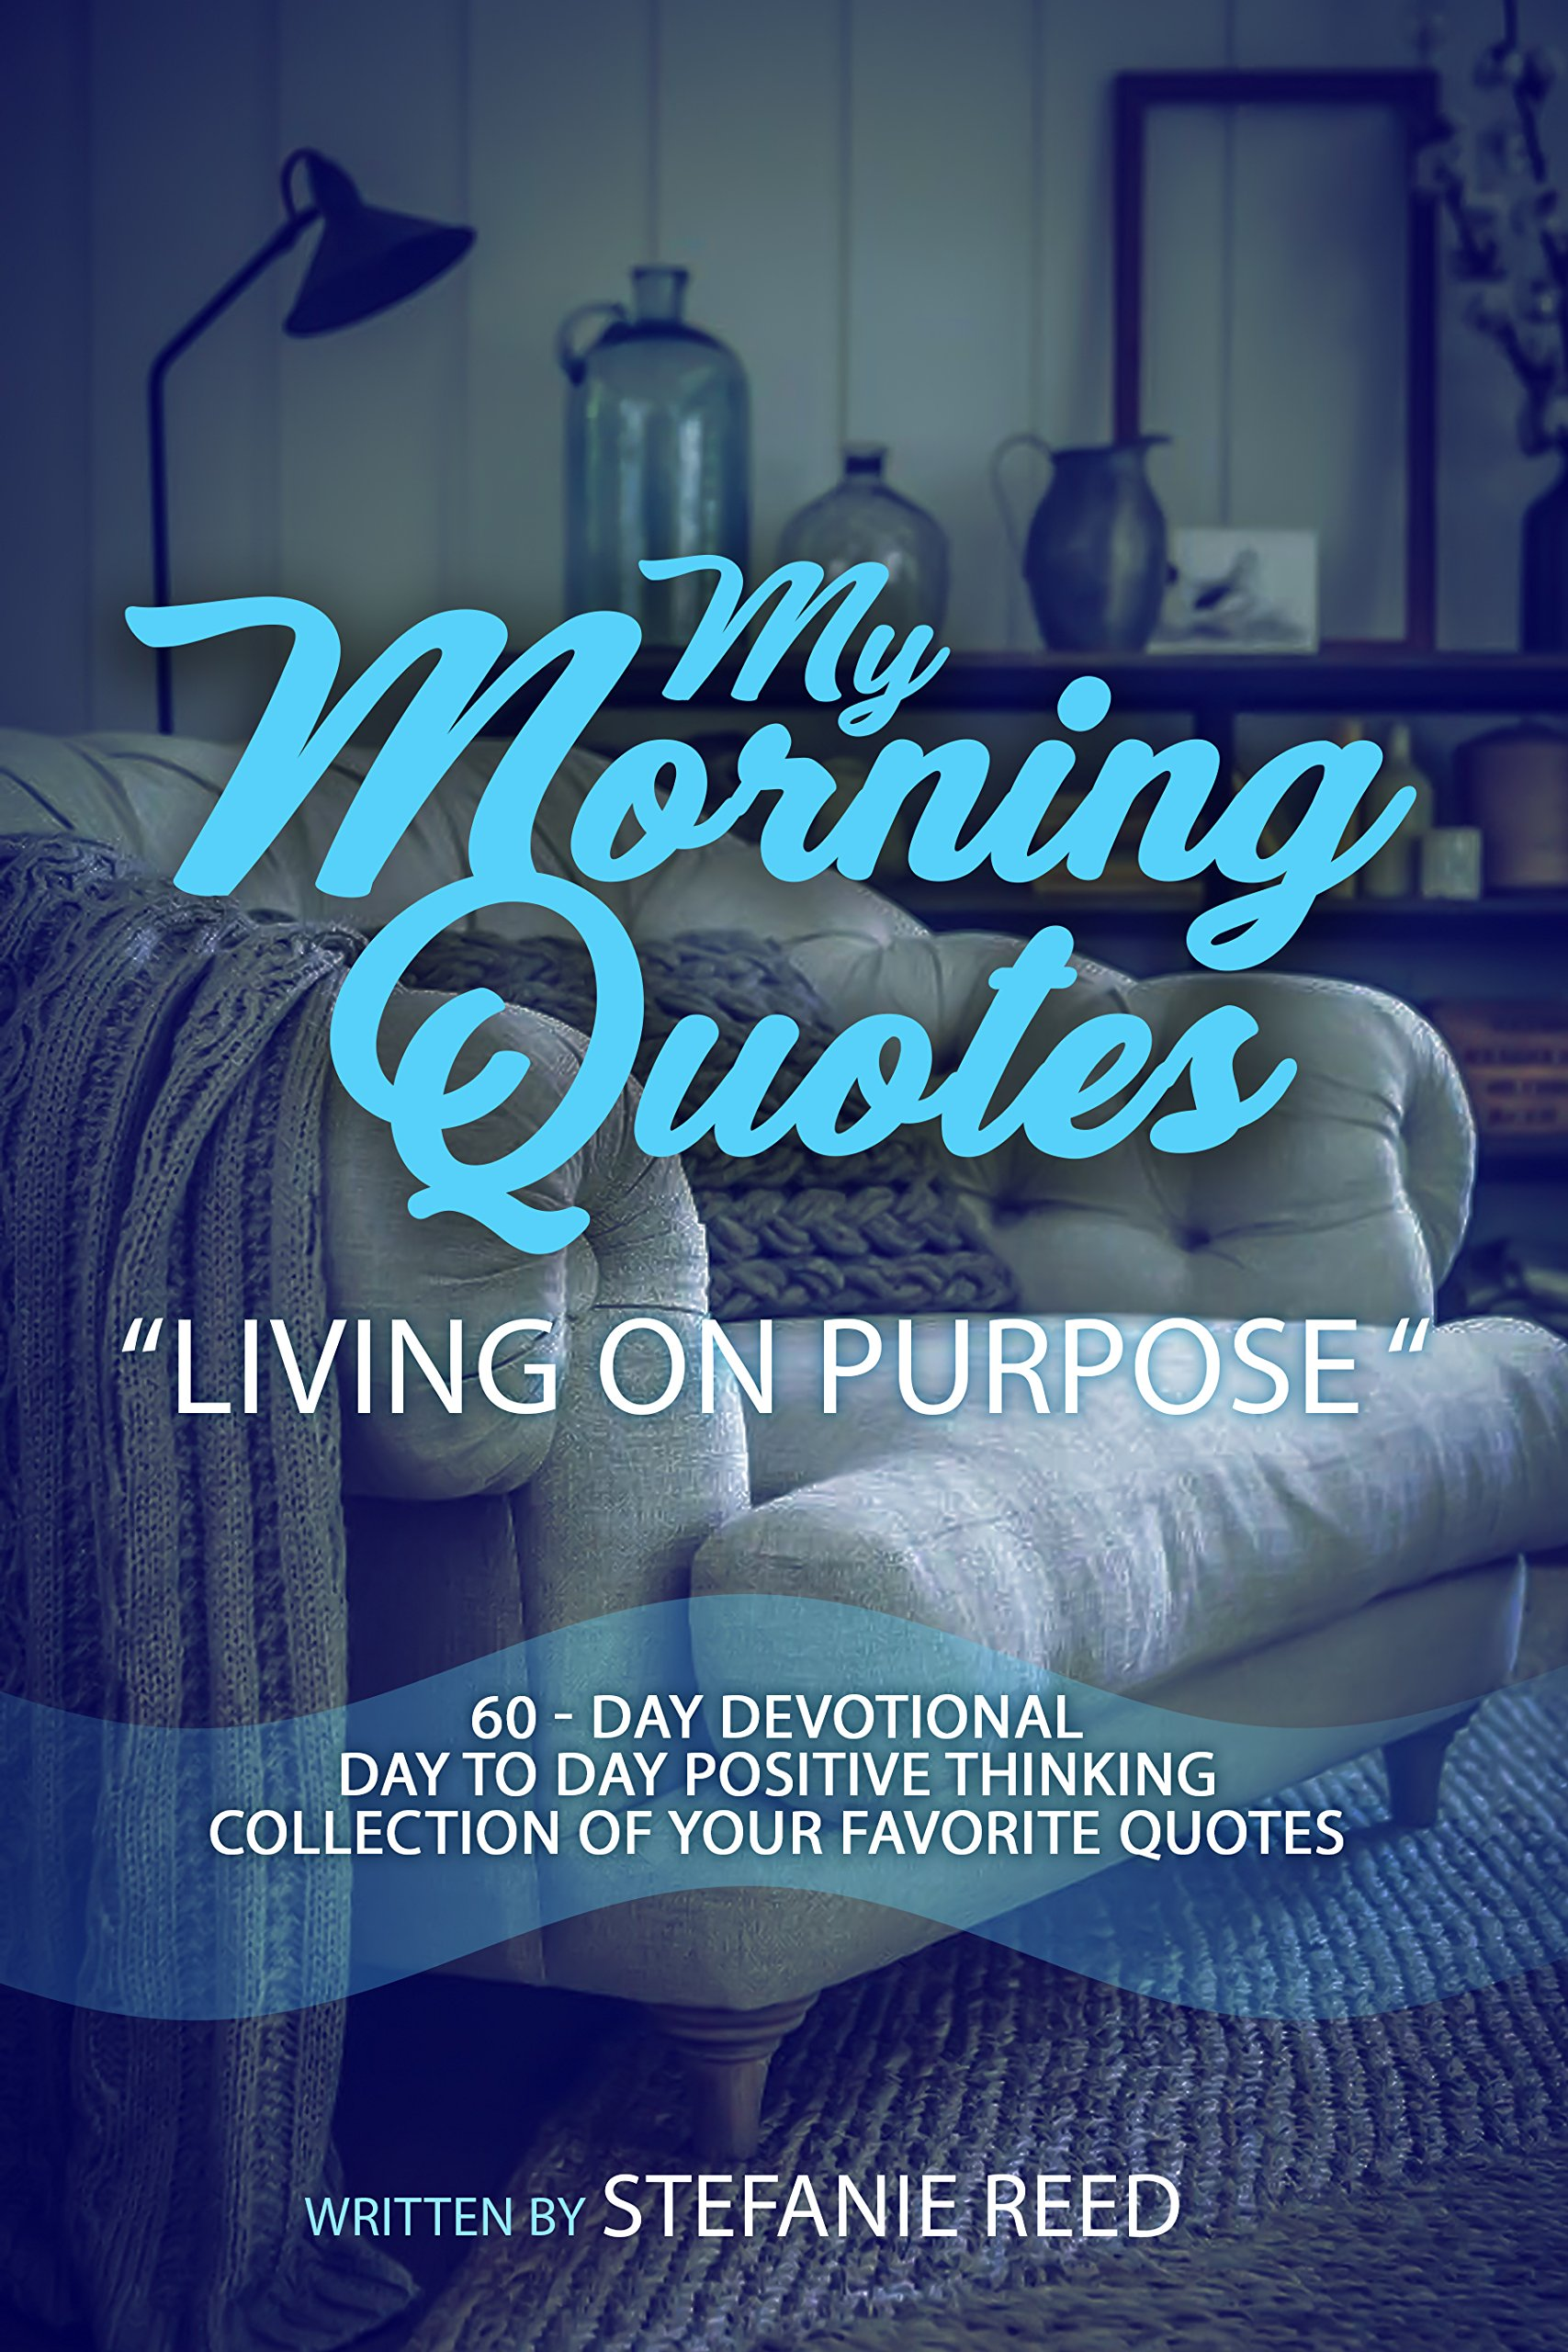 My Morning Quotes-Living On Purpose: Stefanie Reed ...